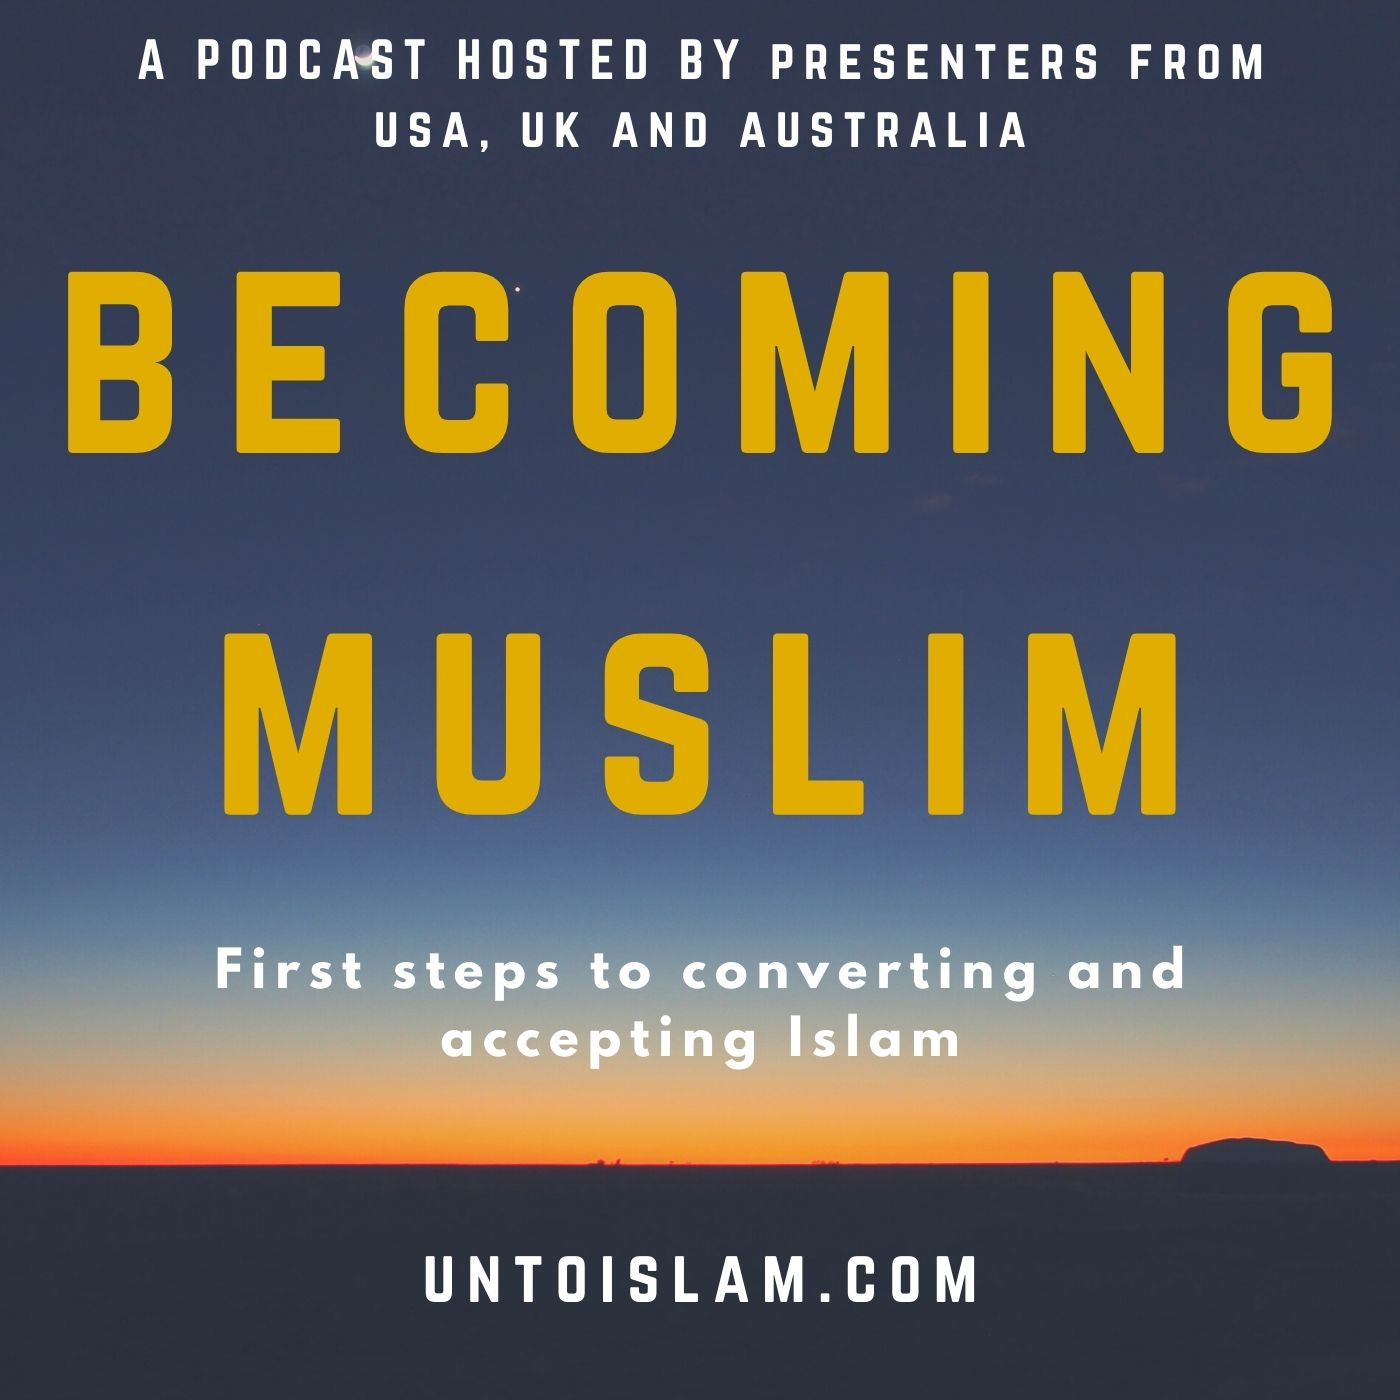 Becoming Muslim - Unto Islam